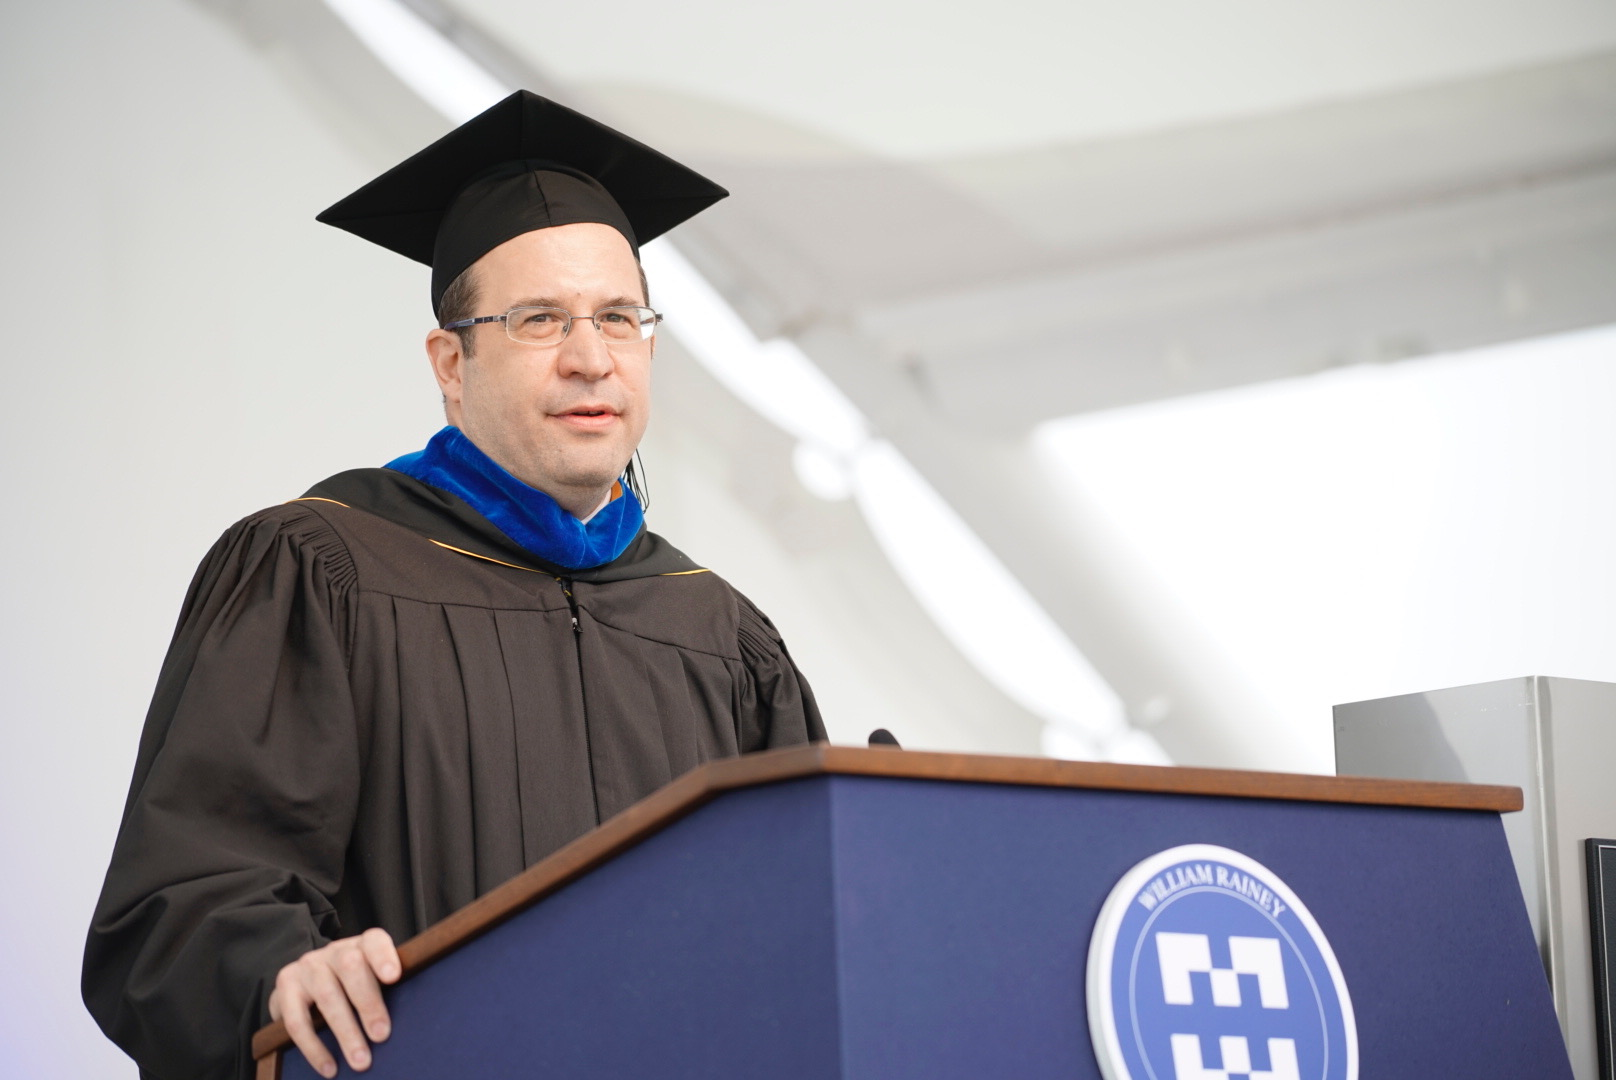 David Coleman gives commencement address